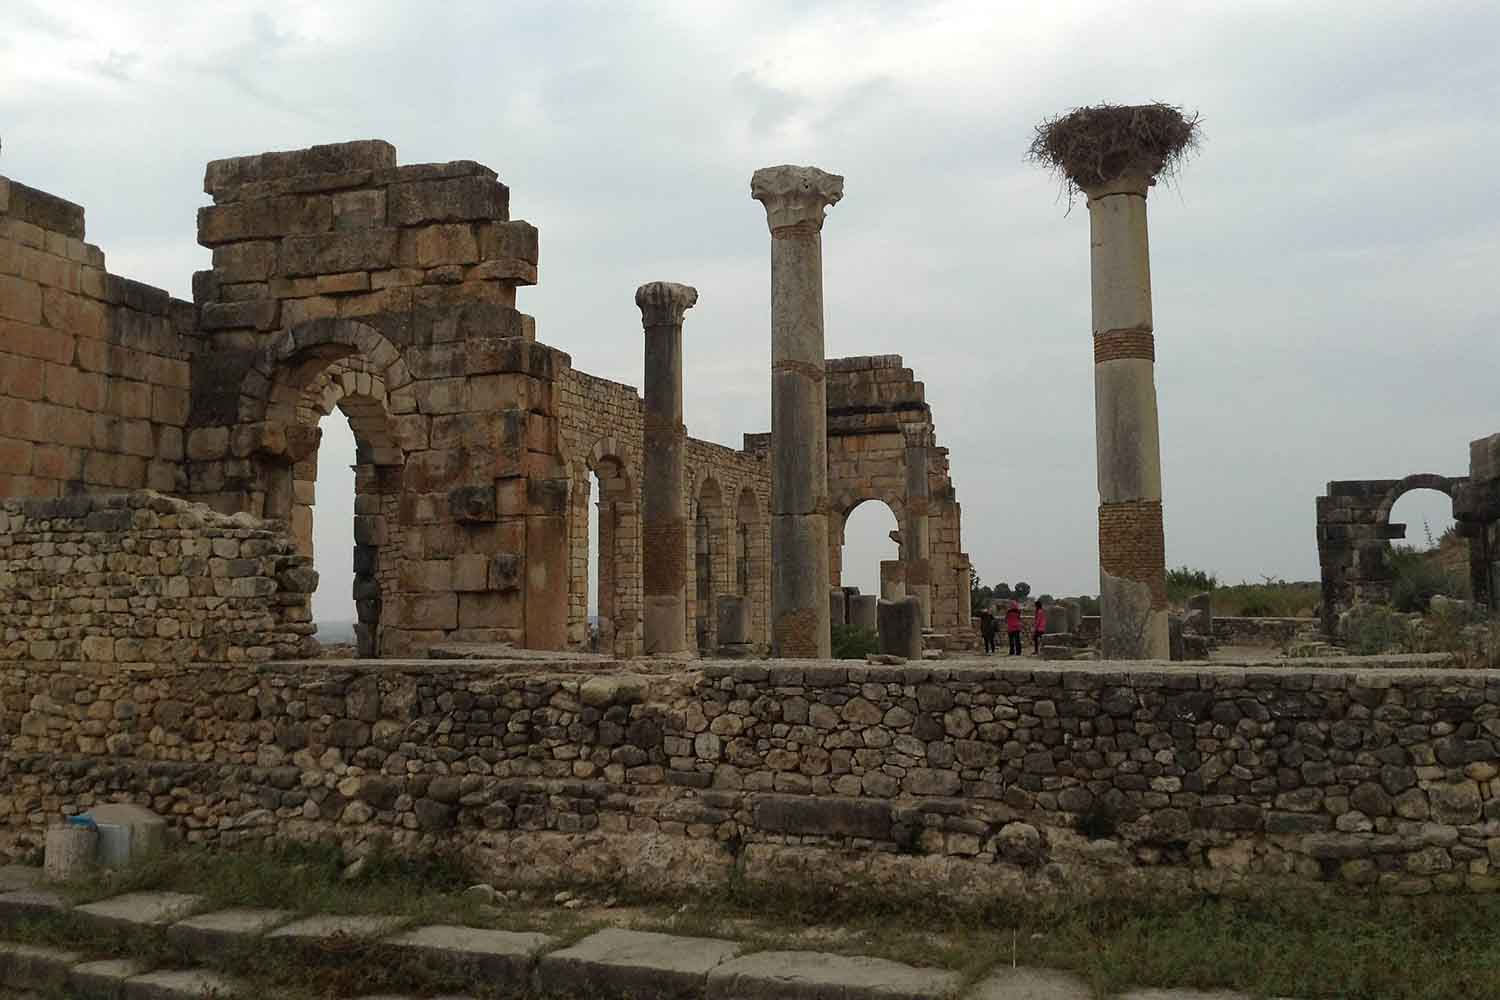 Archaeological Site of the Ancient Roman City of Volubilis